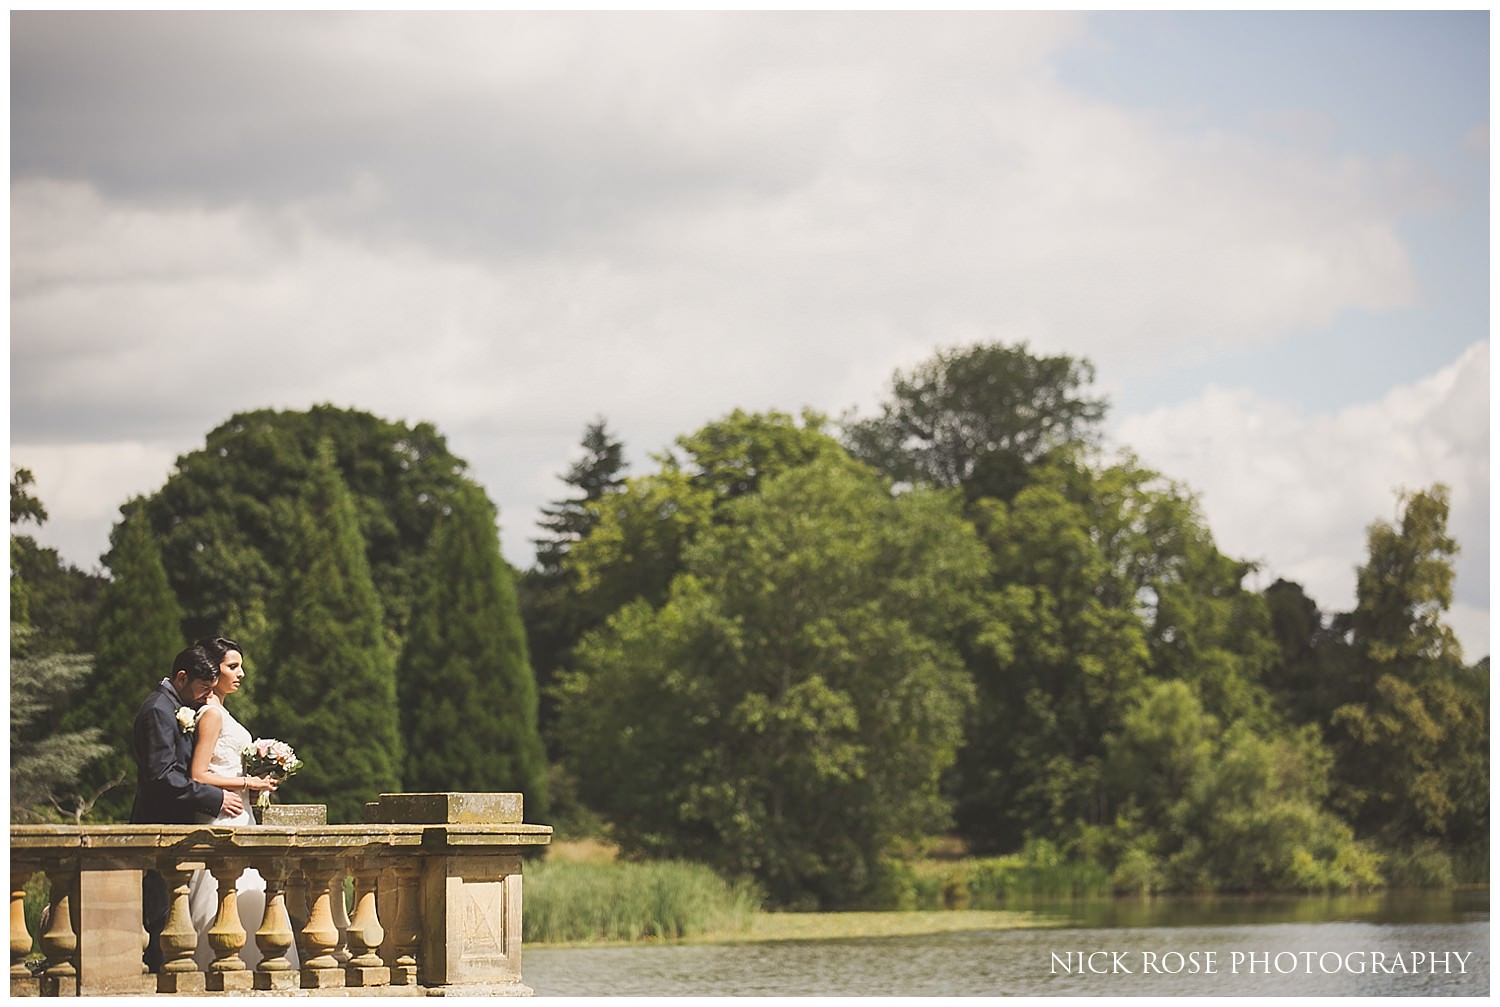 Lakeside wedding portrait photograph by the lake at Hever Castle in Kent